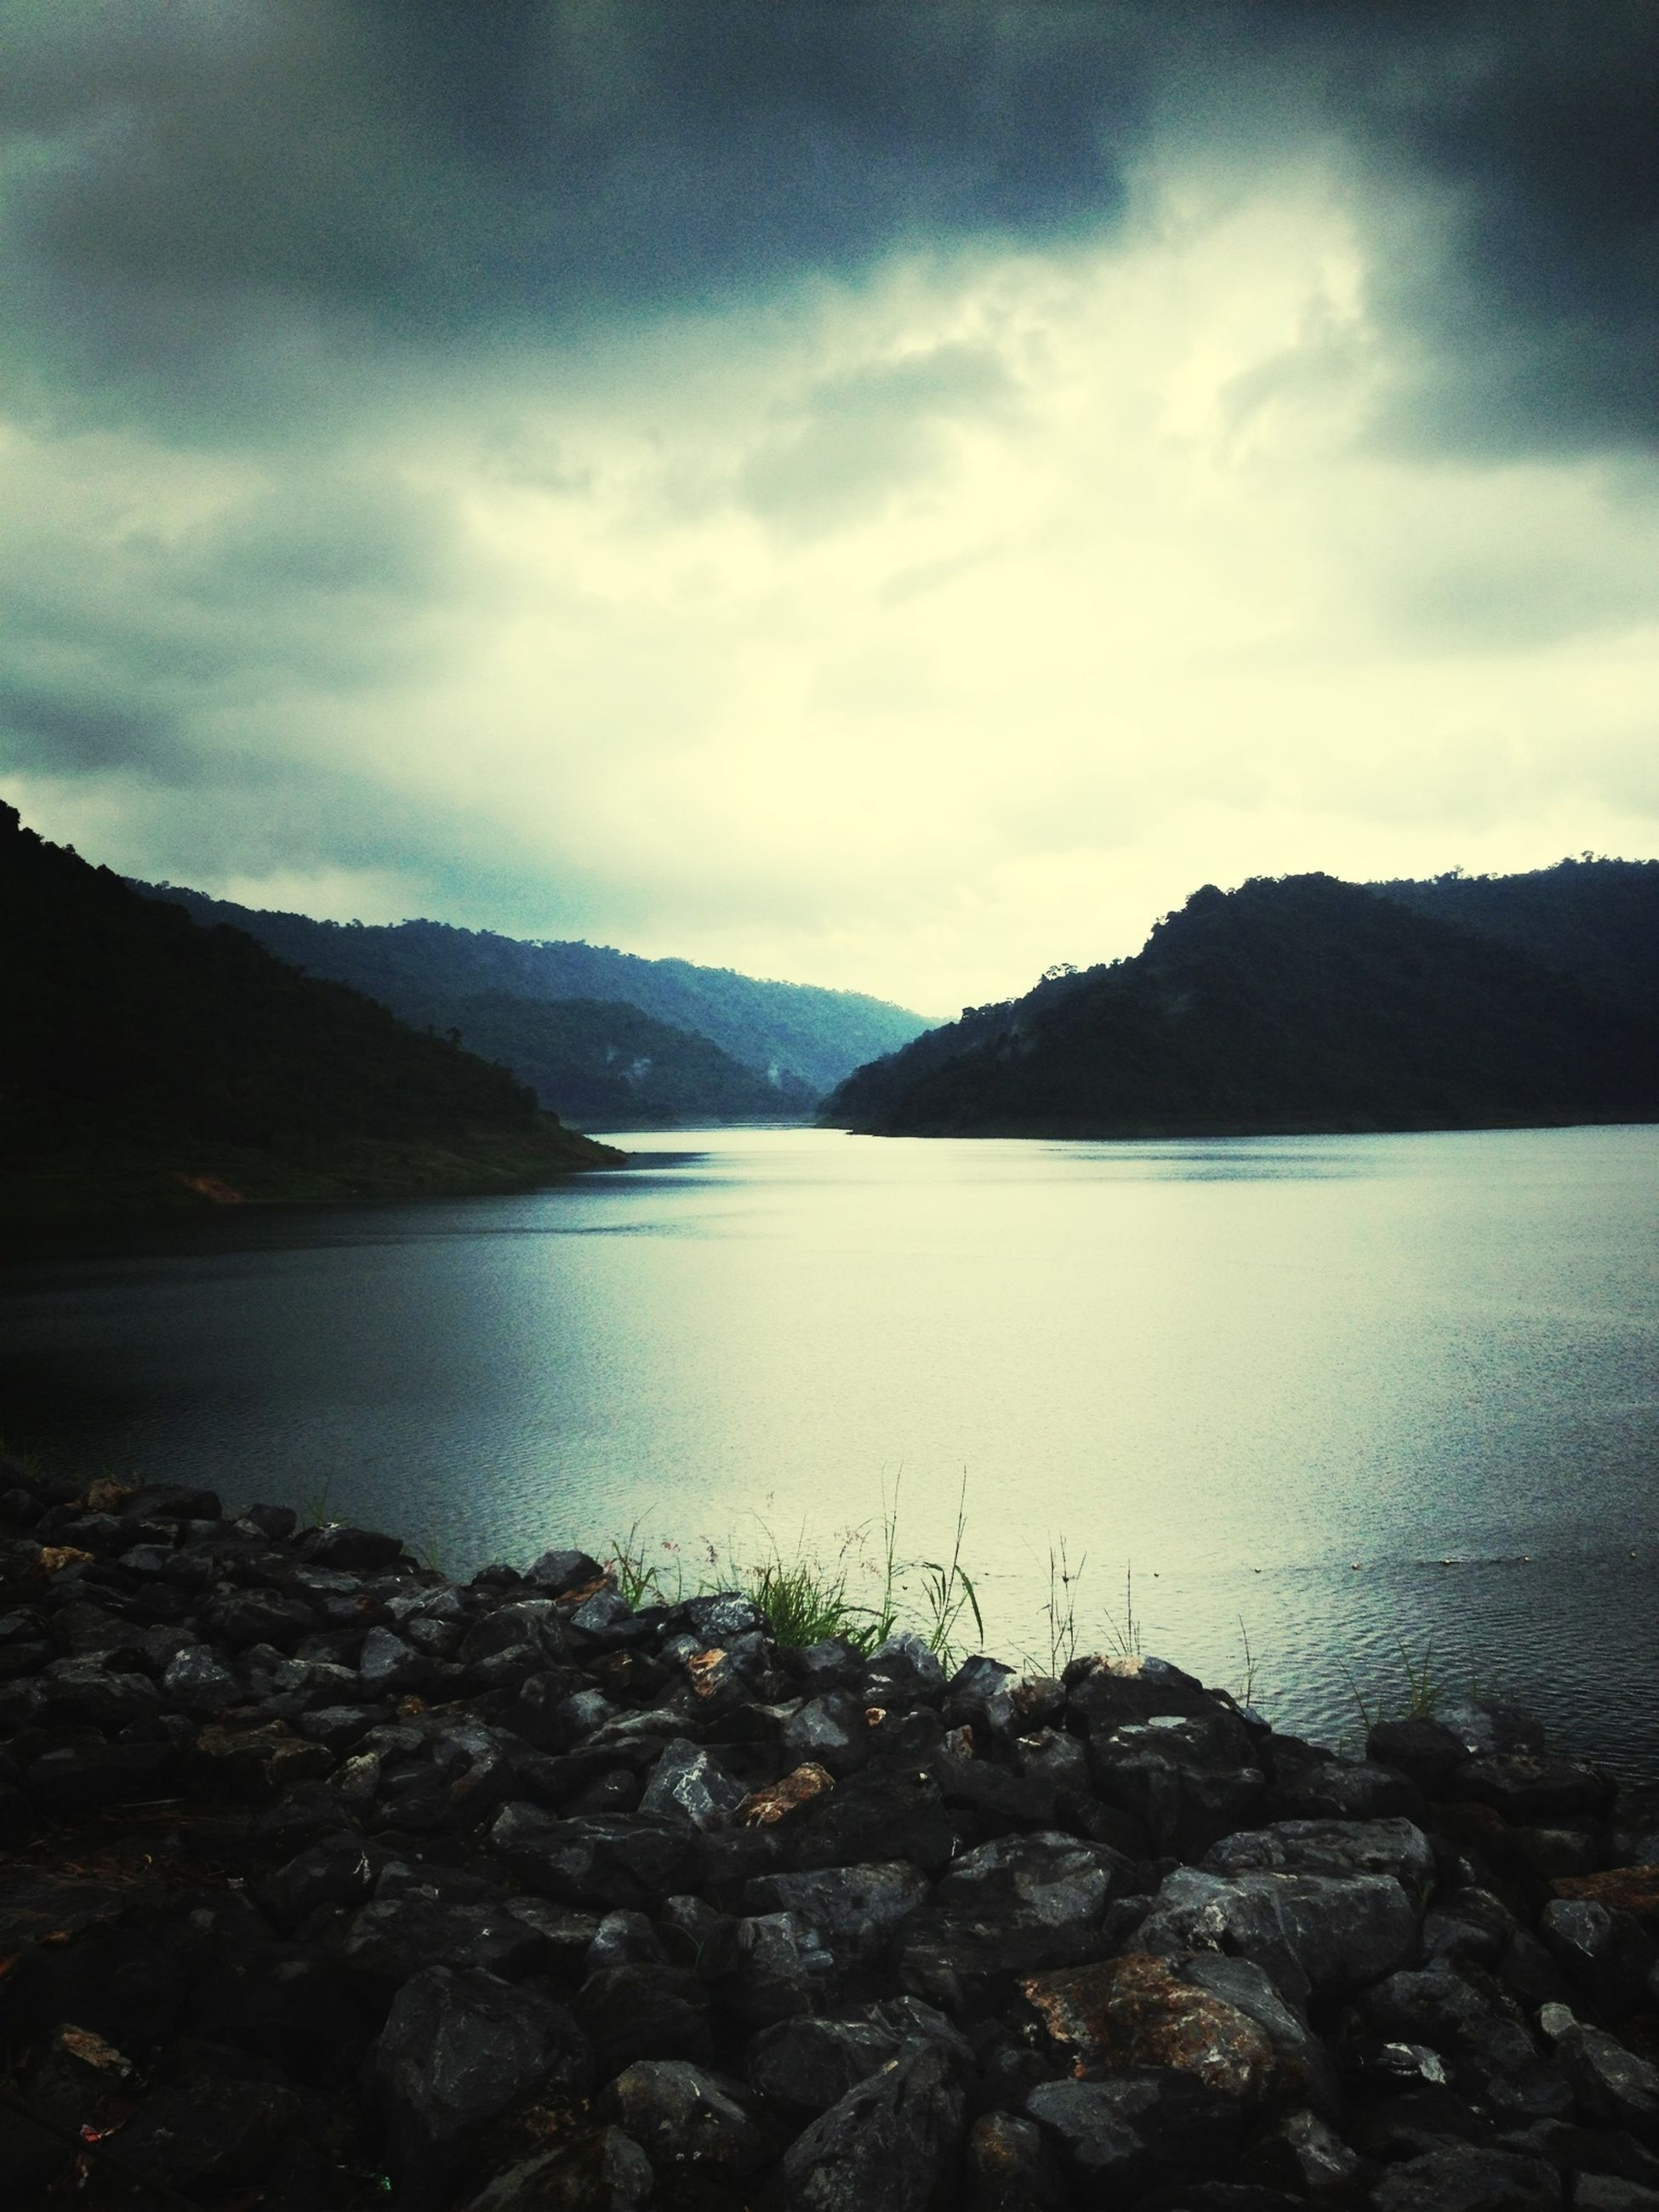 water, mountain, tranquil scene, sky, tranquility, scenics, beauty in nature, cloud - sky, lake, rock - object, nature, mountain range, cloudy, cloud, idyllic, landscape, non-urban scene, river, stone - object, outdoors